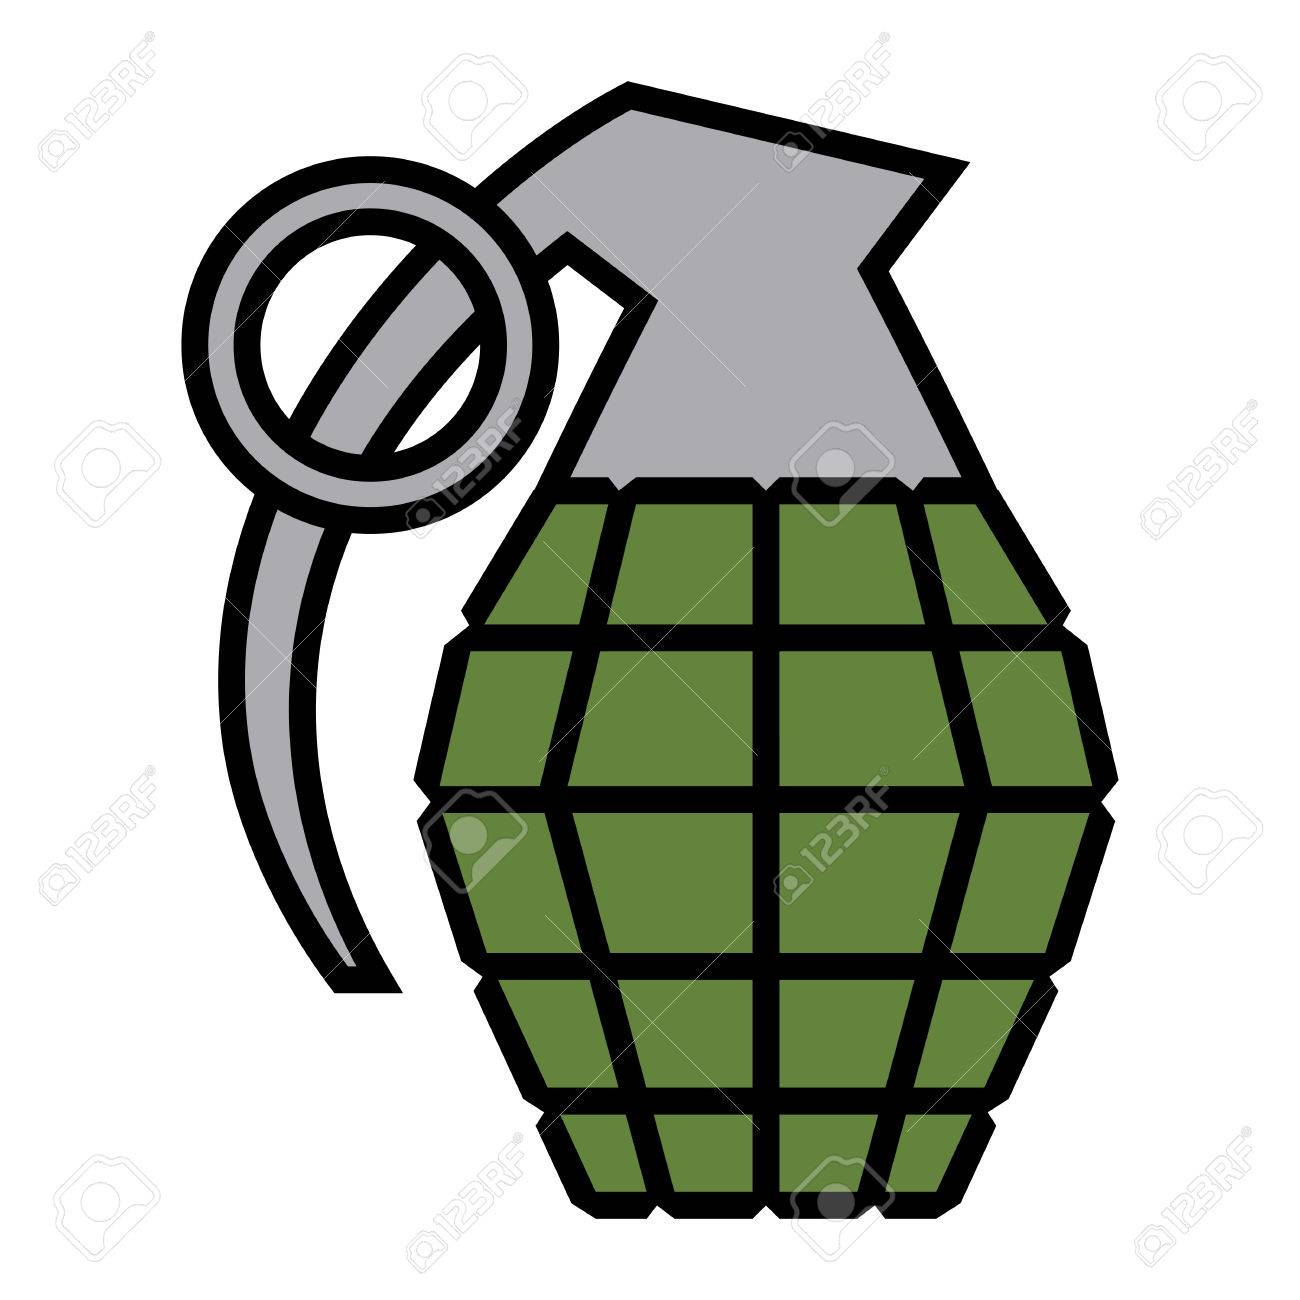 hand grenade vector illustration royalty free cliparts vectors and rh 123rf com